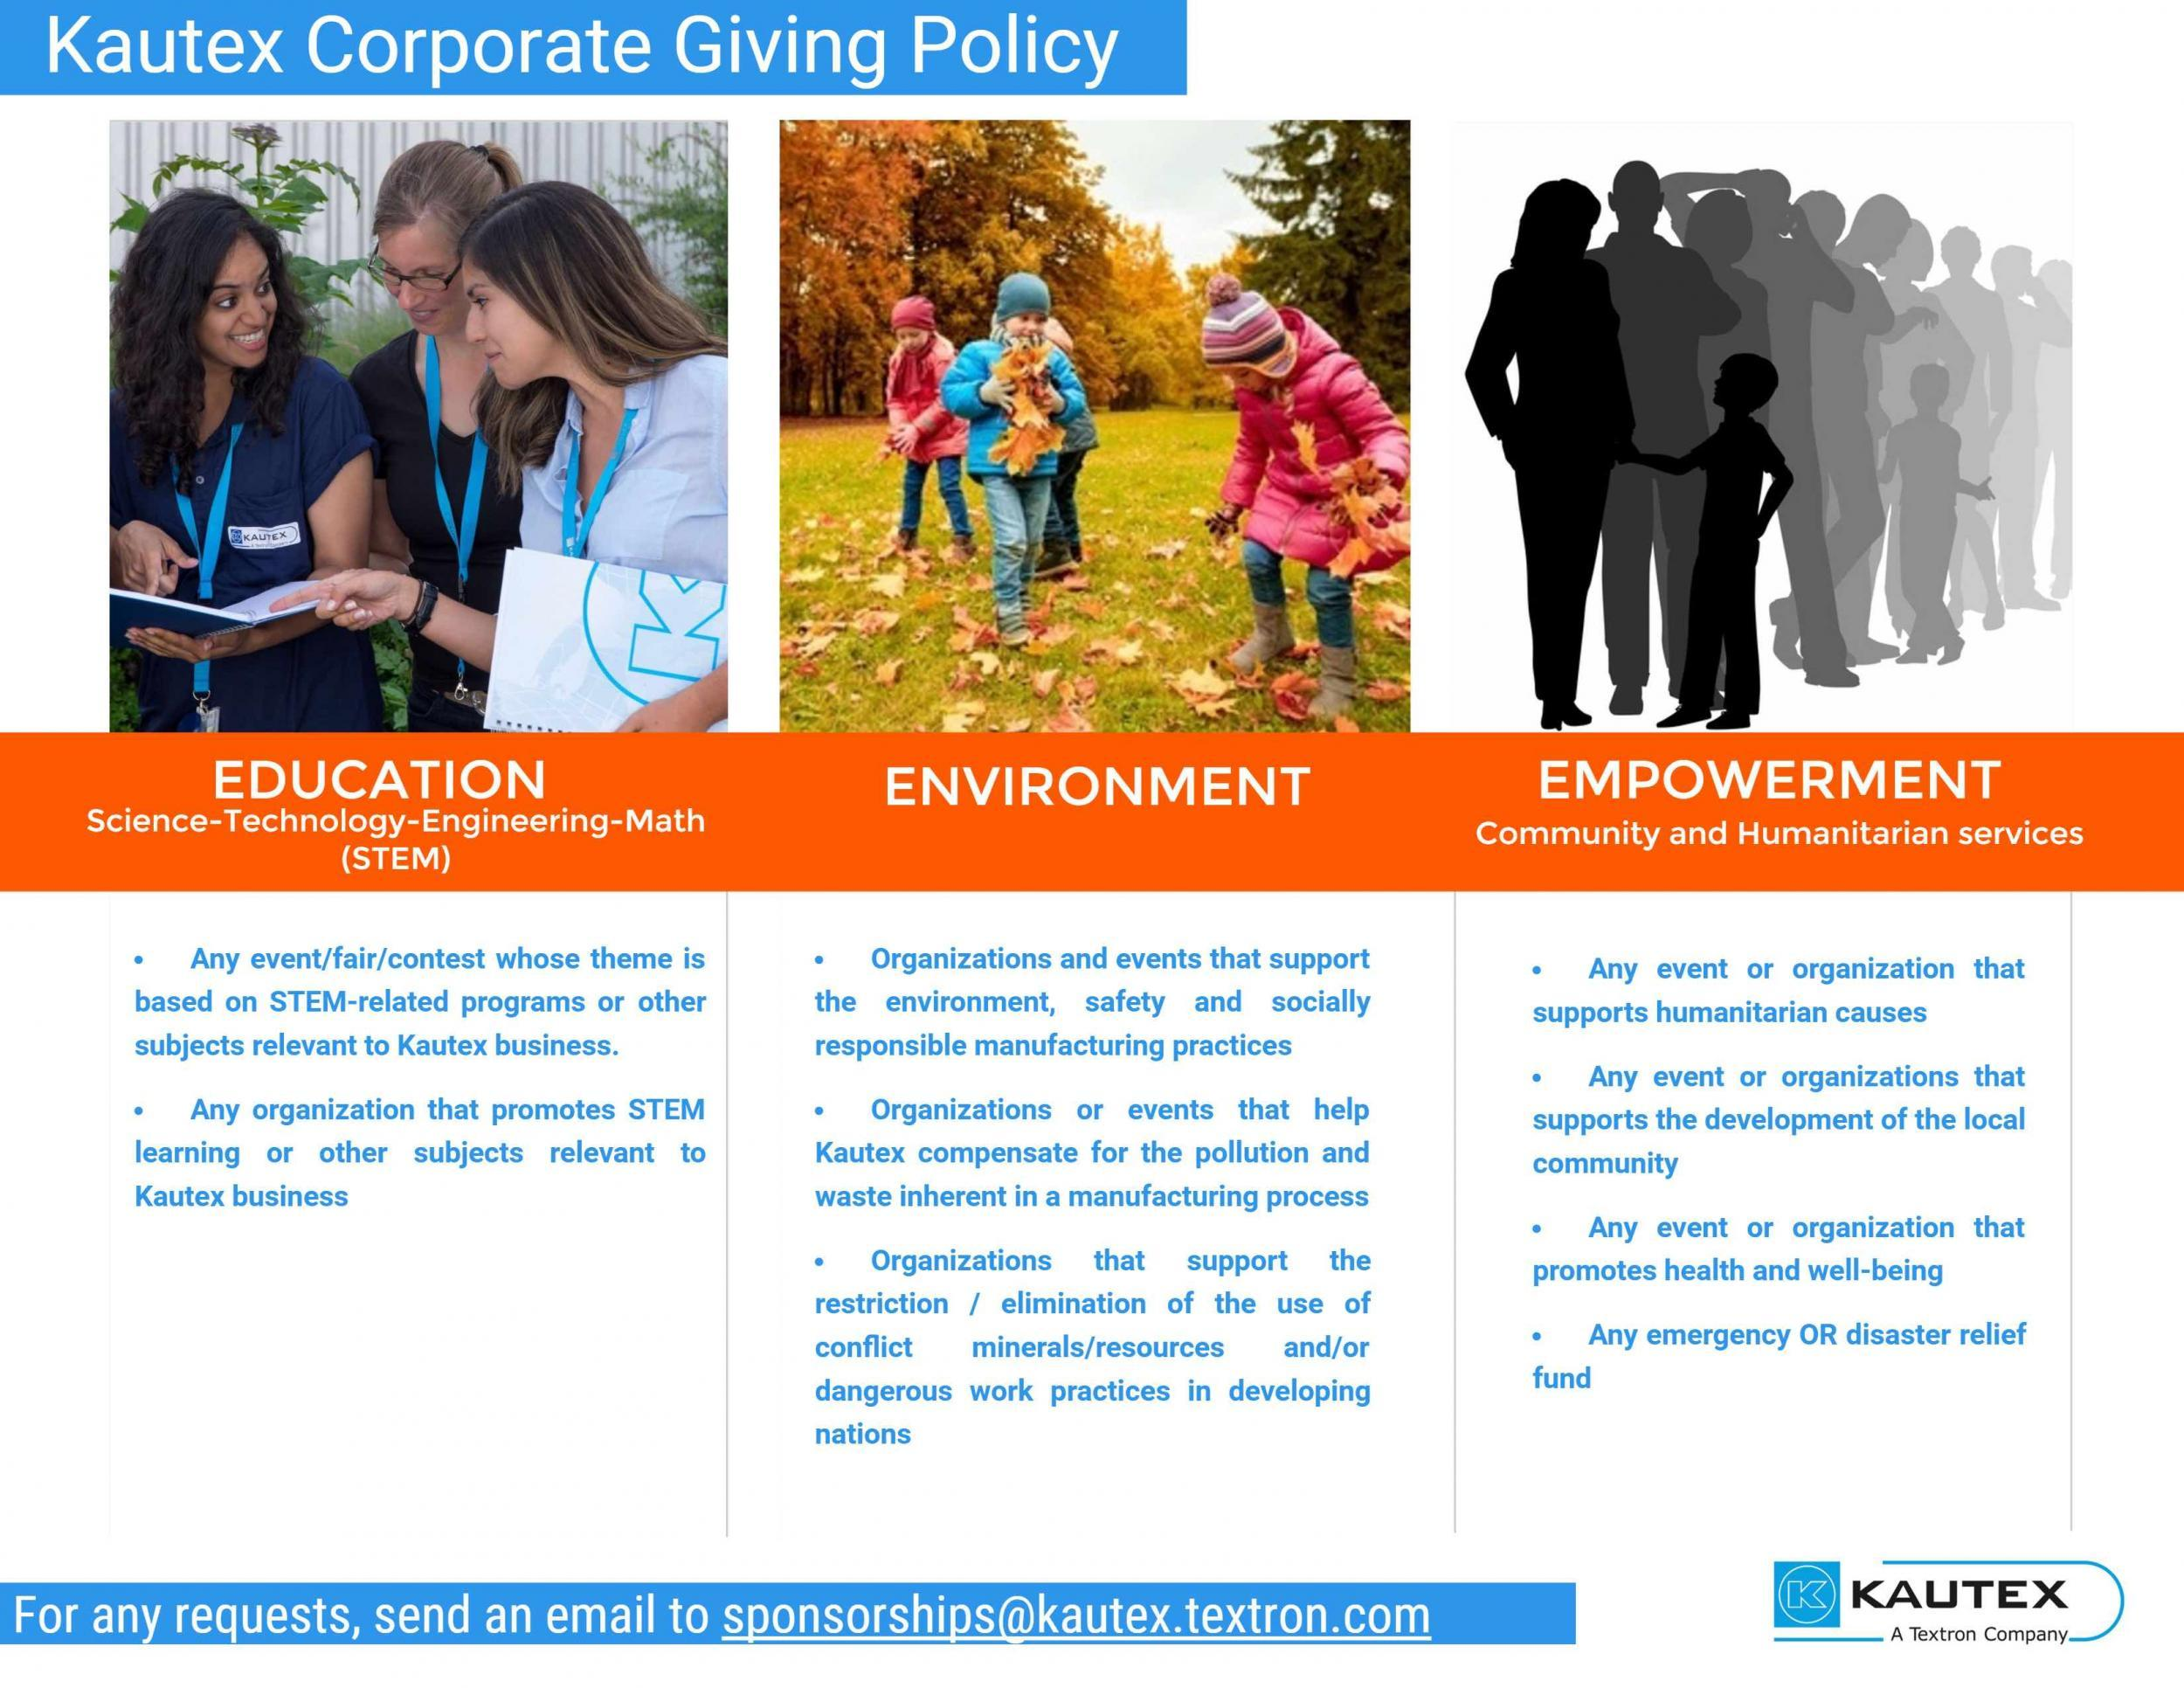 Kautex Corporate Giving Policy